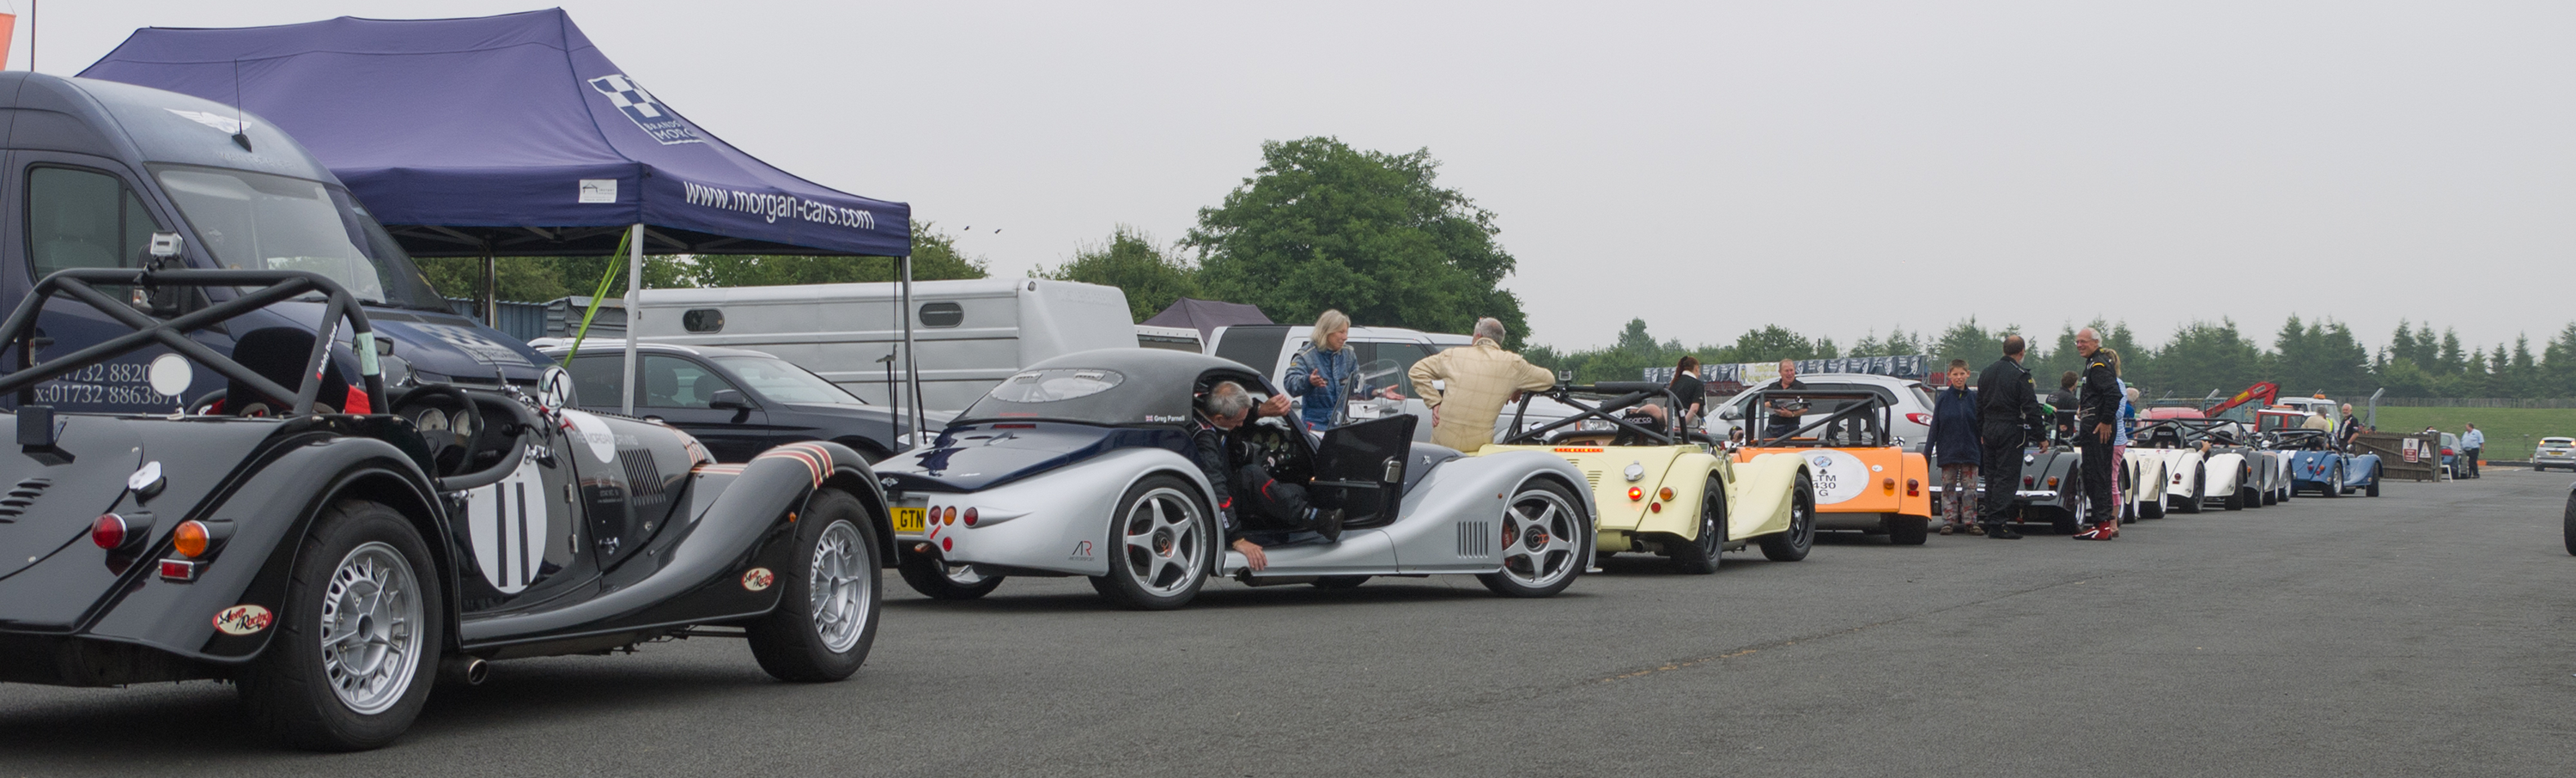 Morgan Challenge race at Castle Combe - collecting area